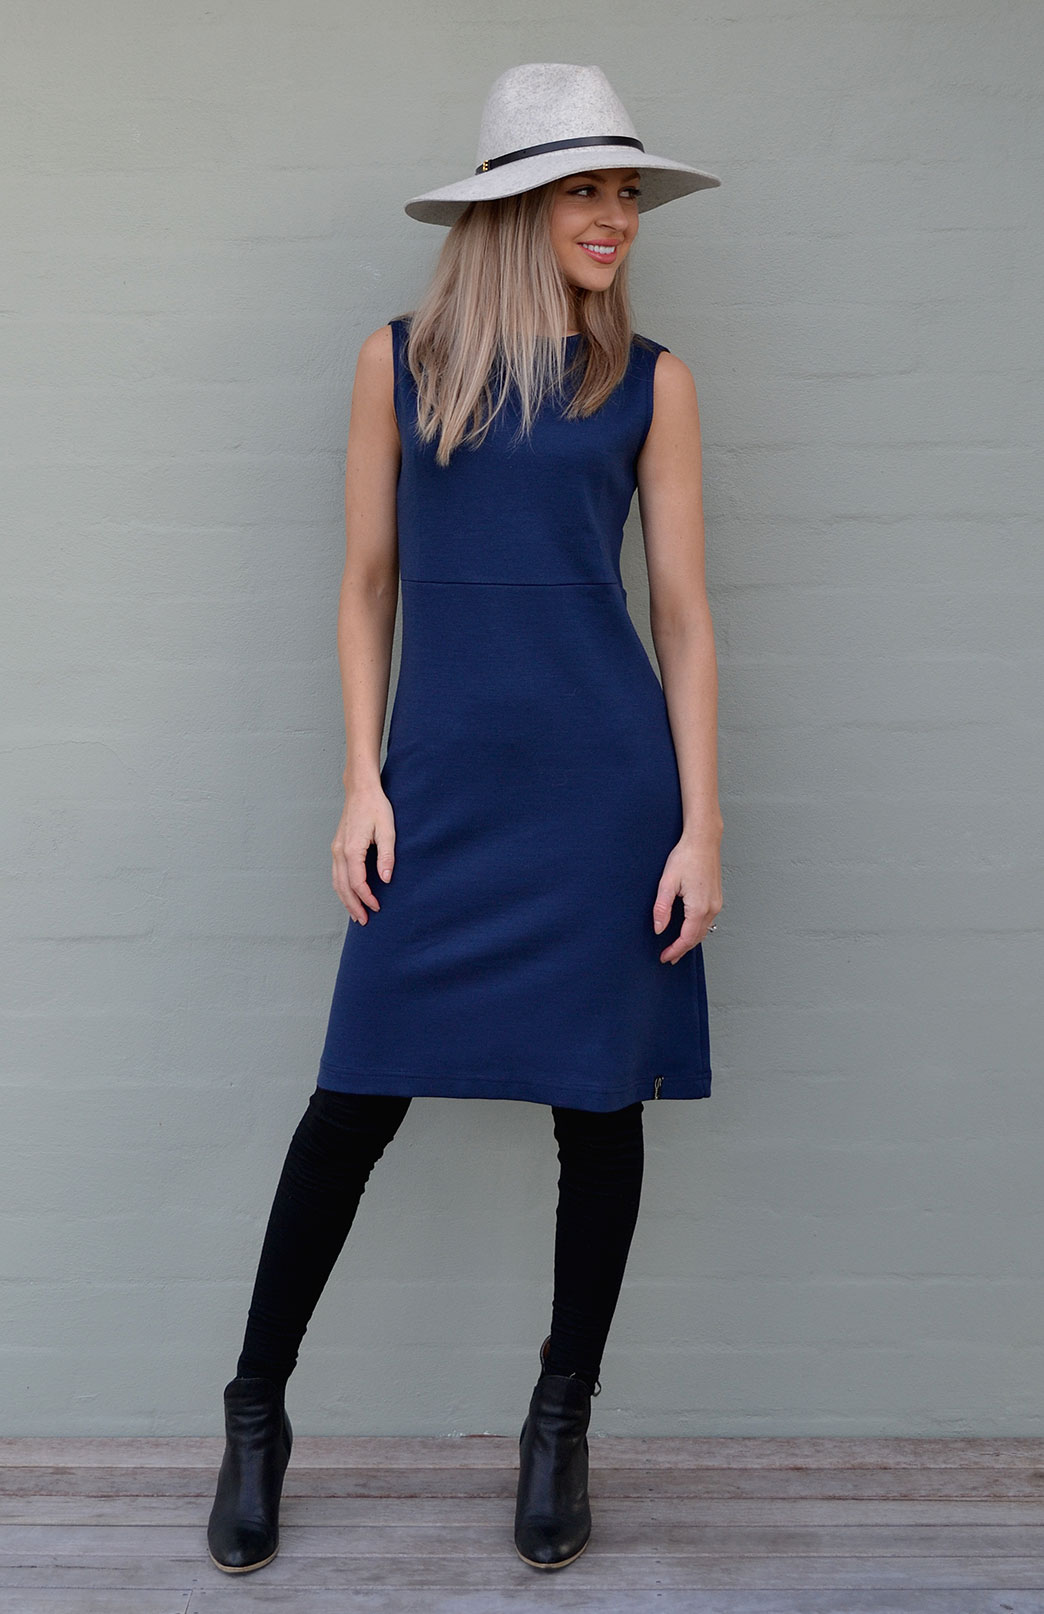 Asha Straight Dress - Women's Indigo Blue Wool Straight Wool Dress - Smitten Merino Tasmania Australia